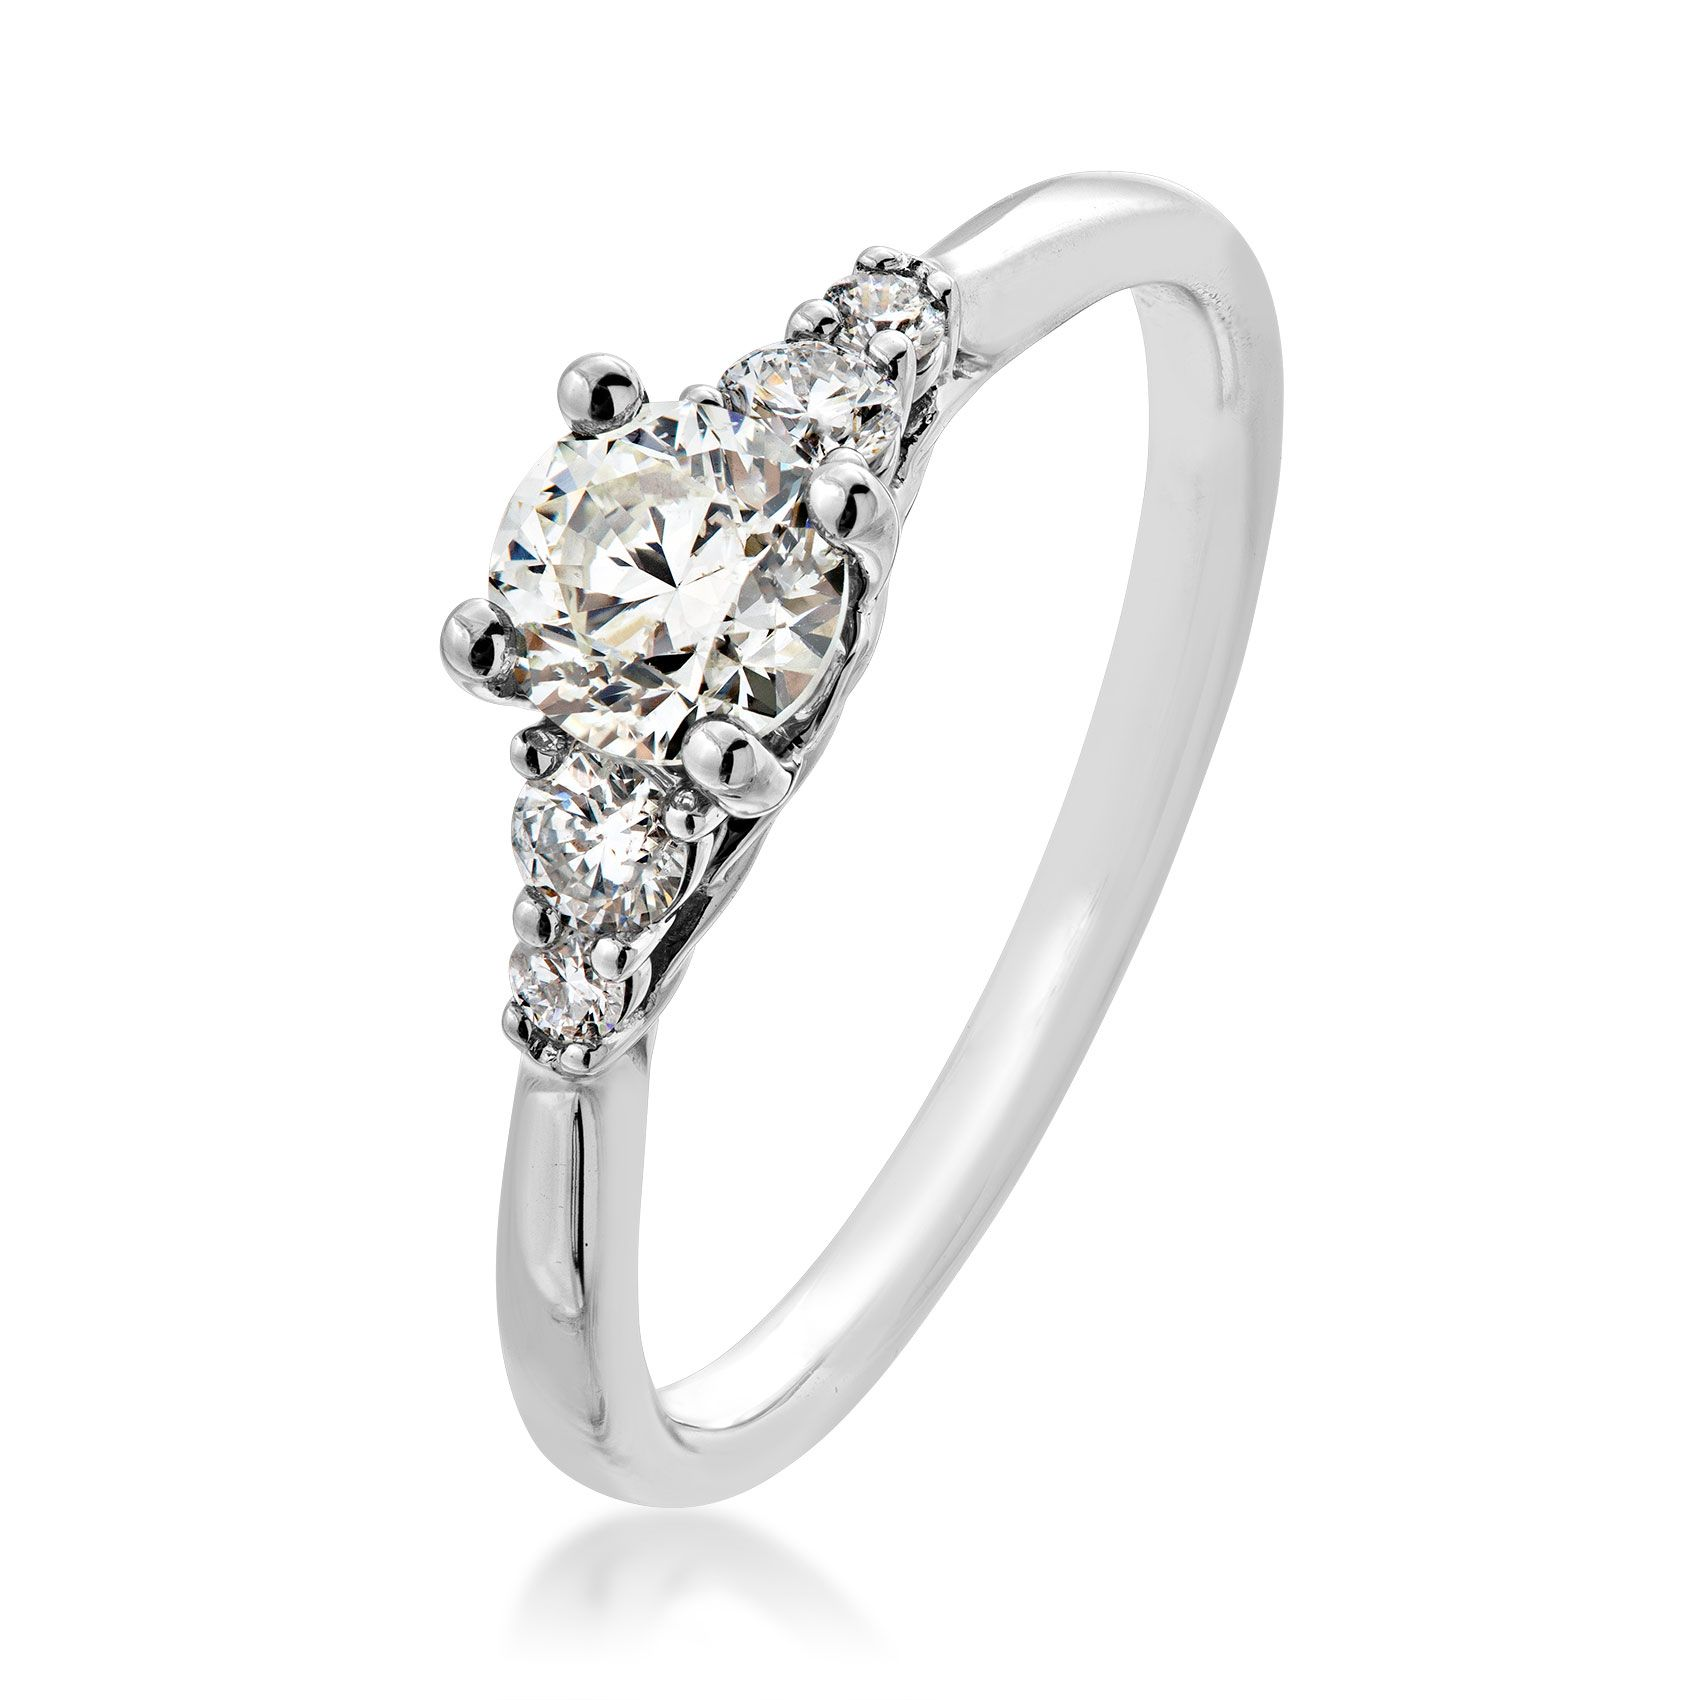 Canadian Rocks 1/2 ct. Round Diamond Engagement Ring with